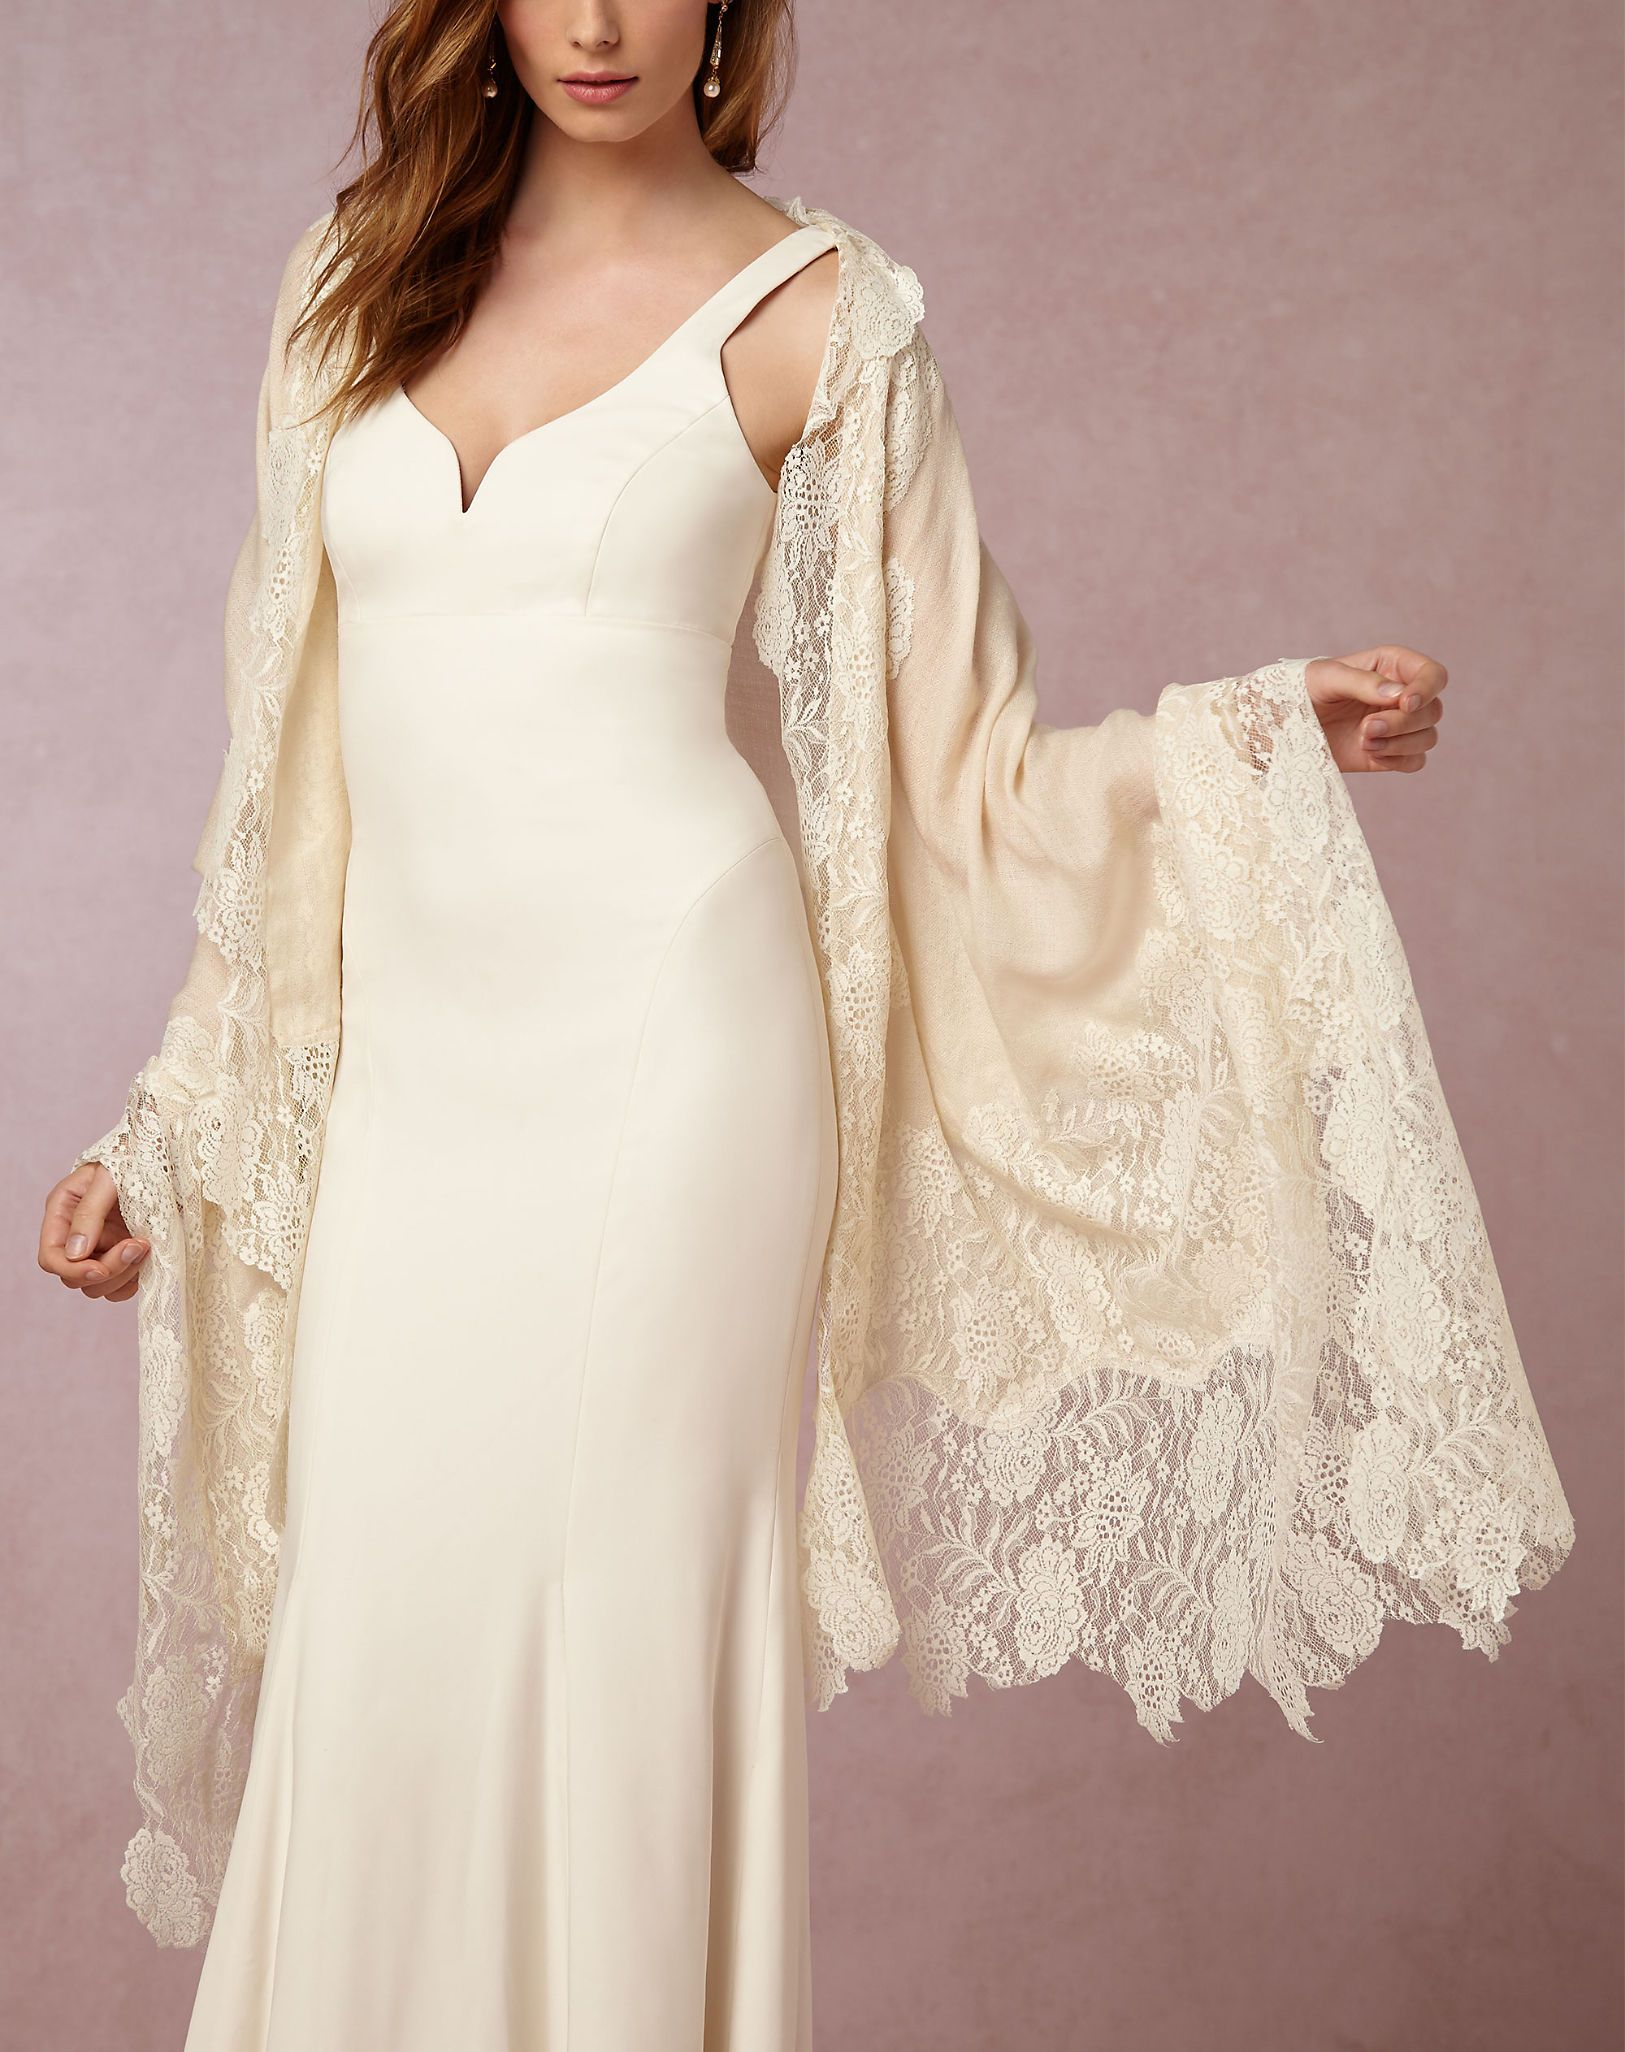 How to Stay Warm at Your Winter Wedding Bridal cover up